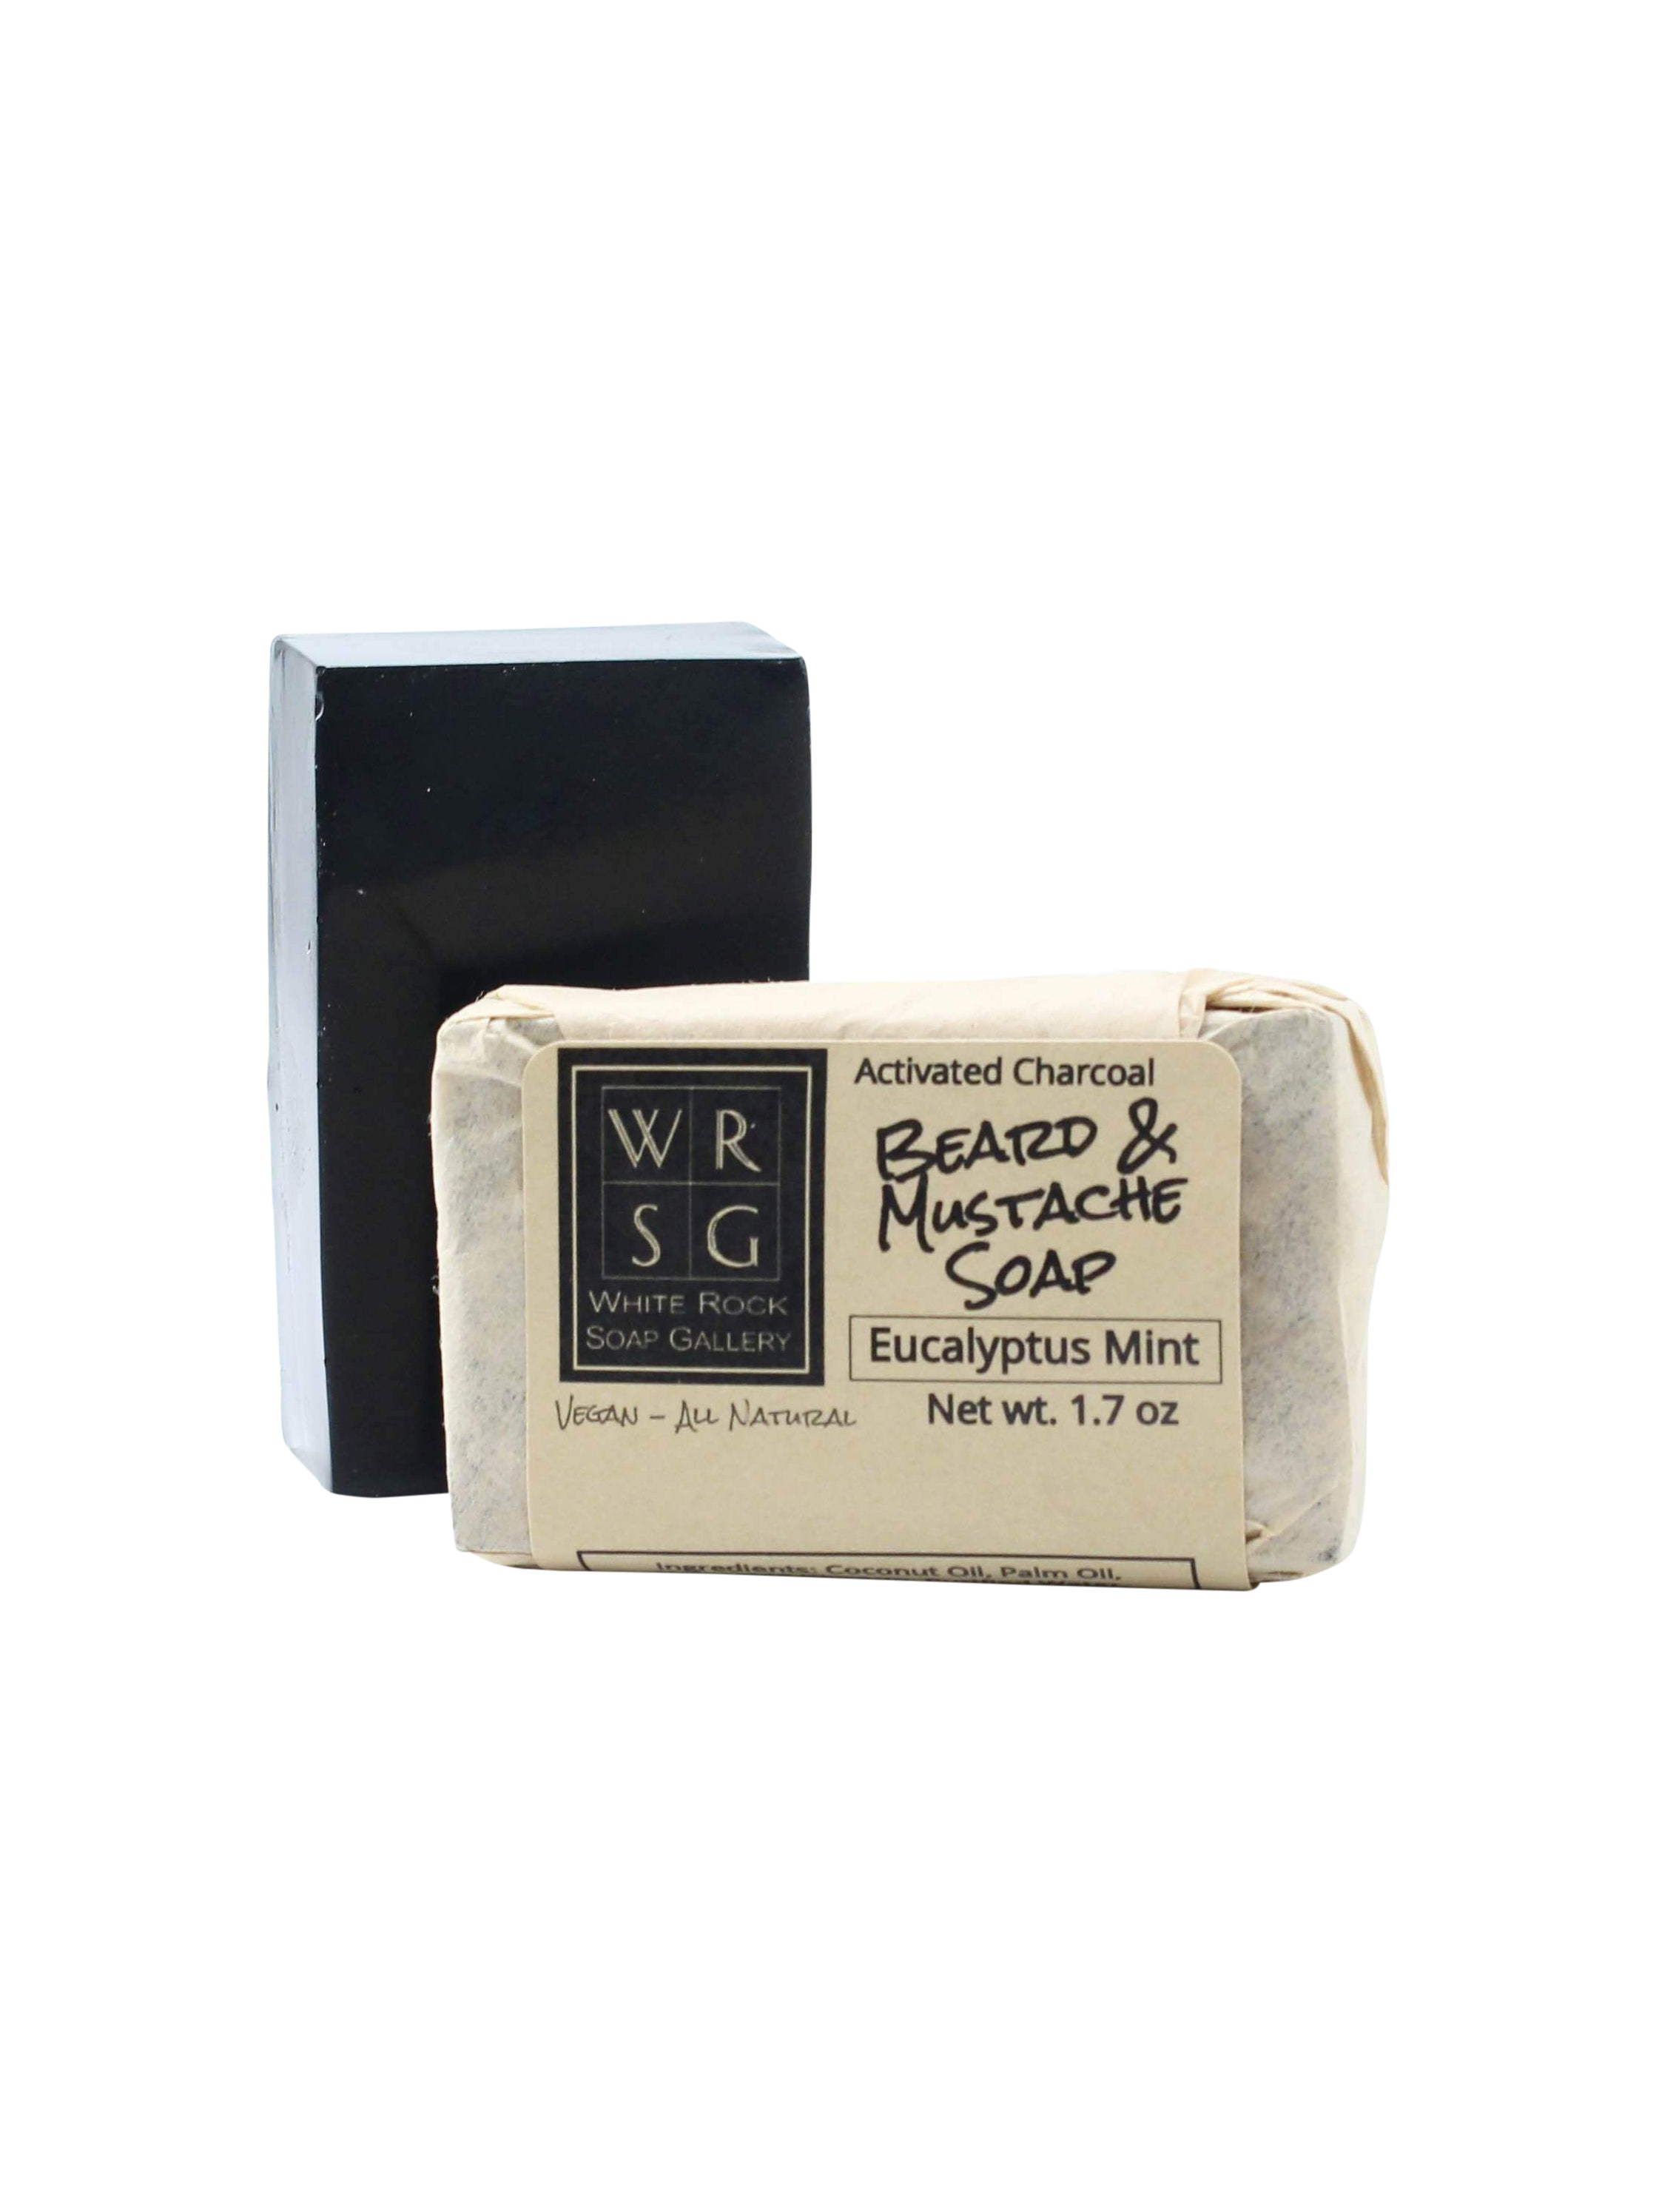 Activated Charcoal Face & Beard Soap Bar